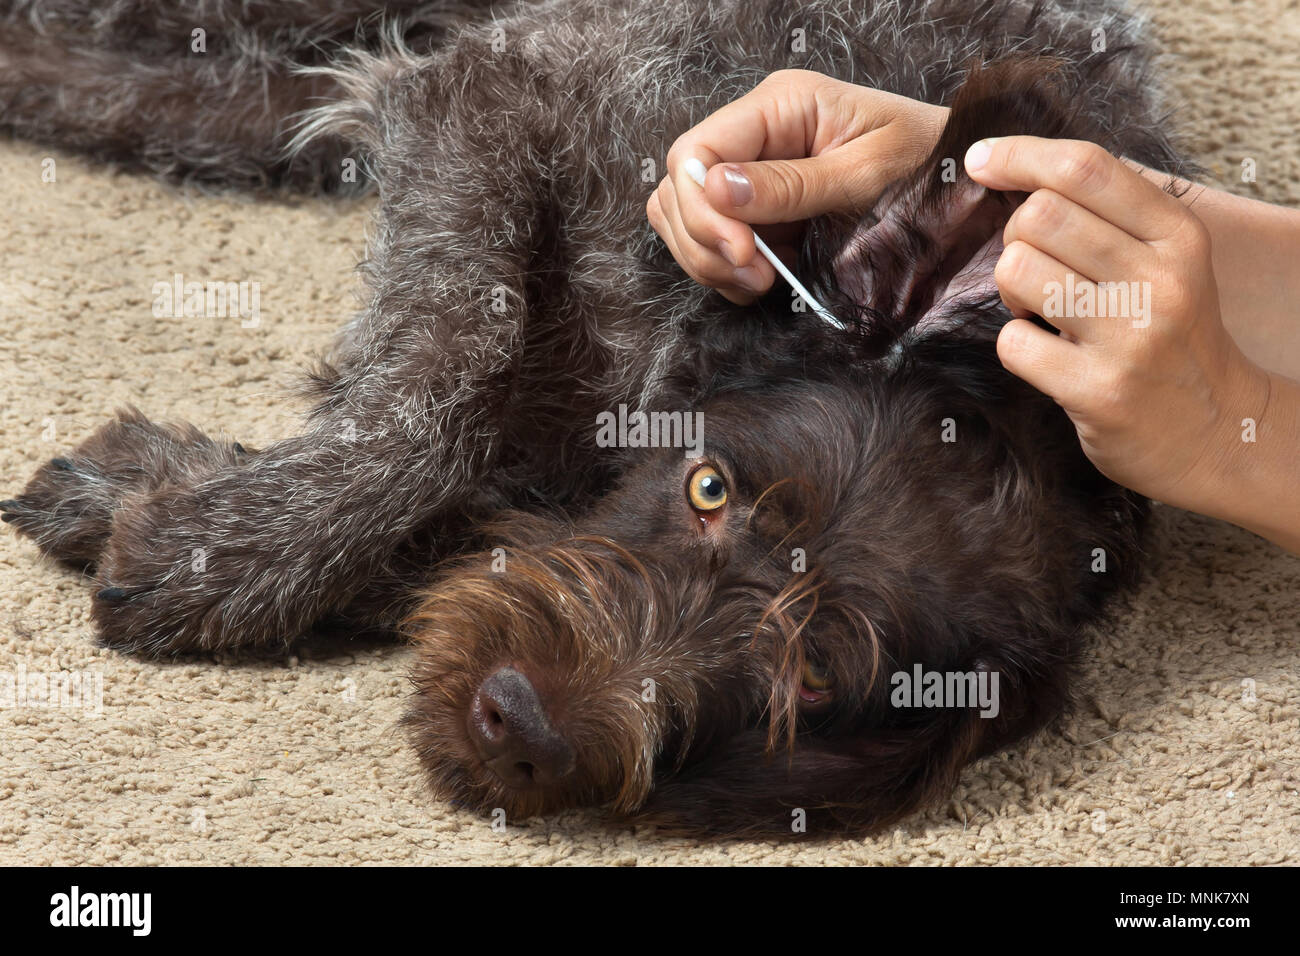 hands cleaning the ear of dog with cotton swab - Stock Image